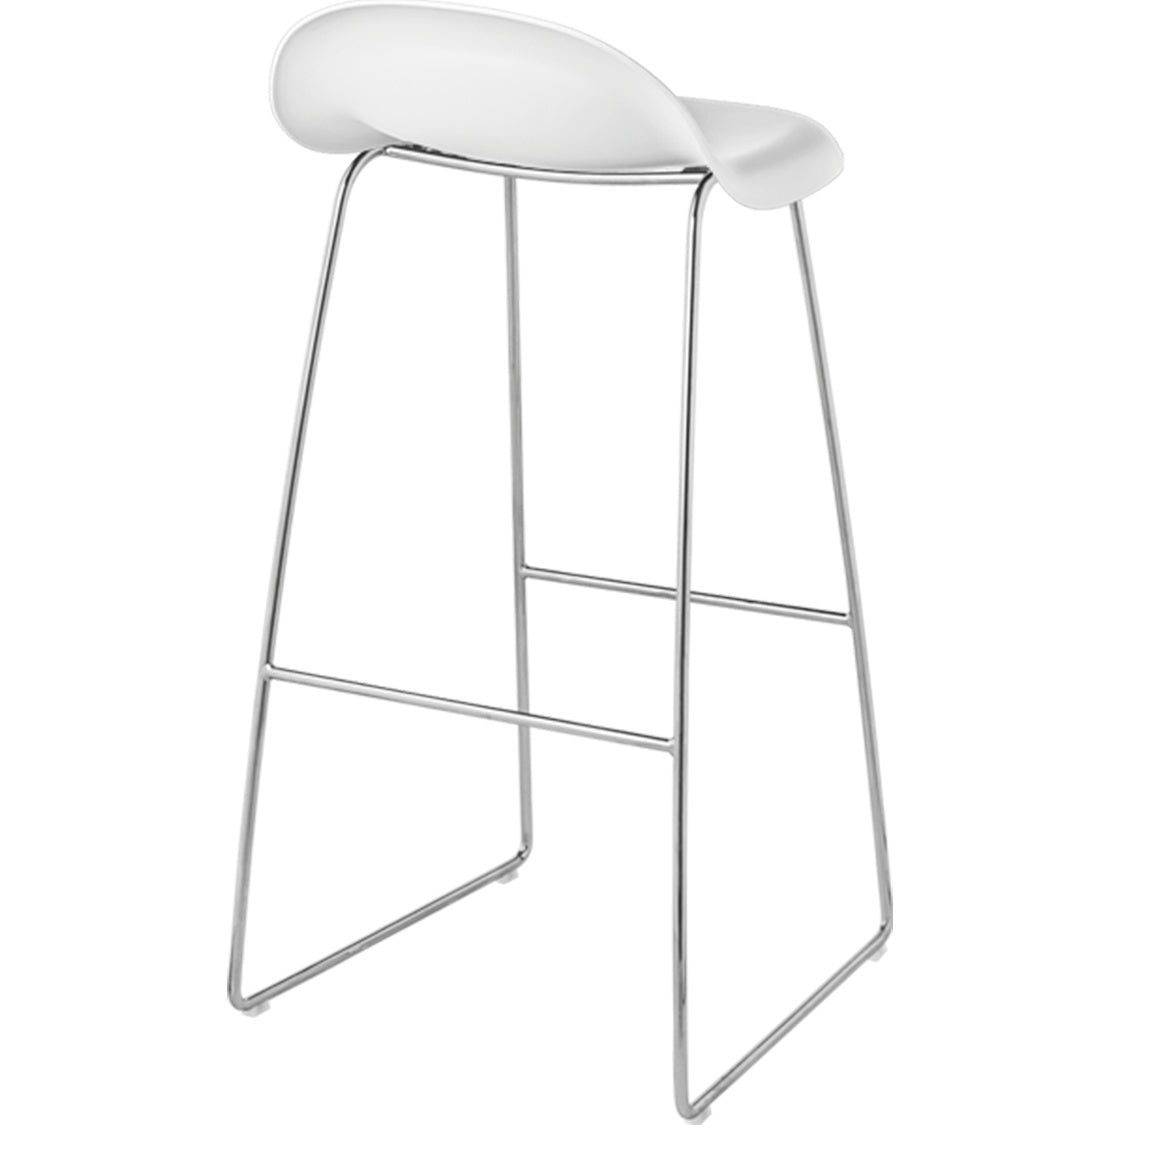 GUBI 3 STOOL-CHROME BASE - Eclectic Cool  - 6